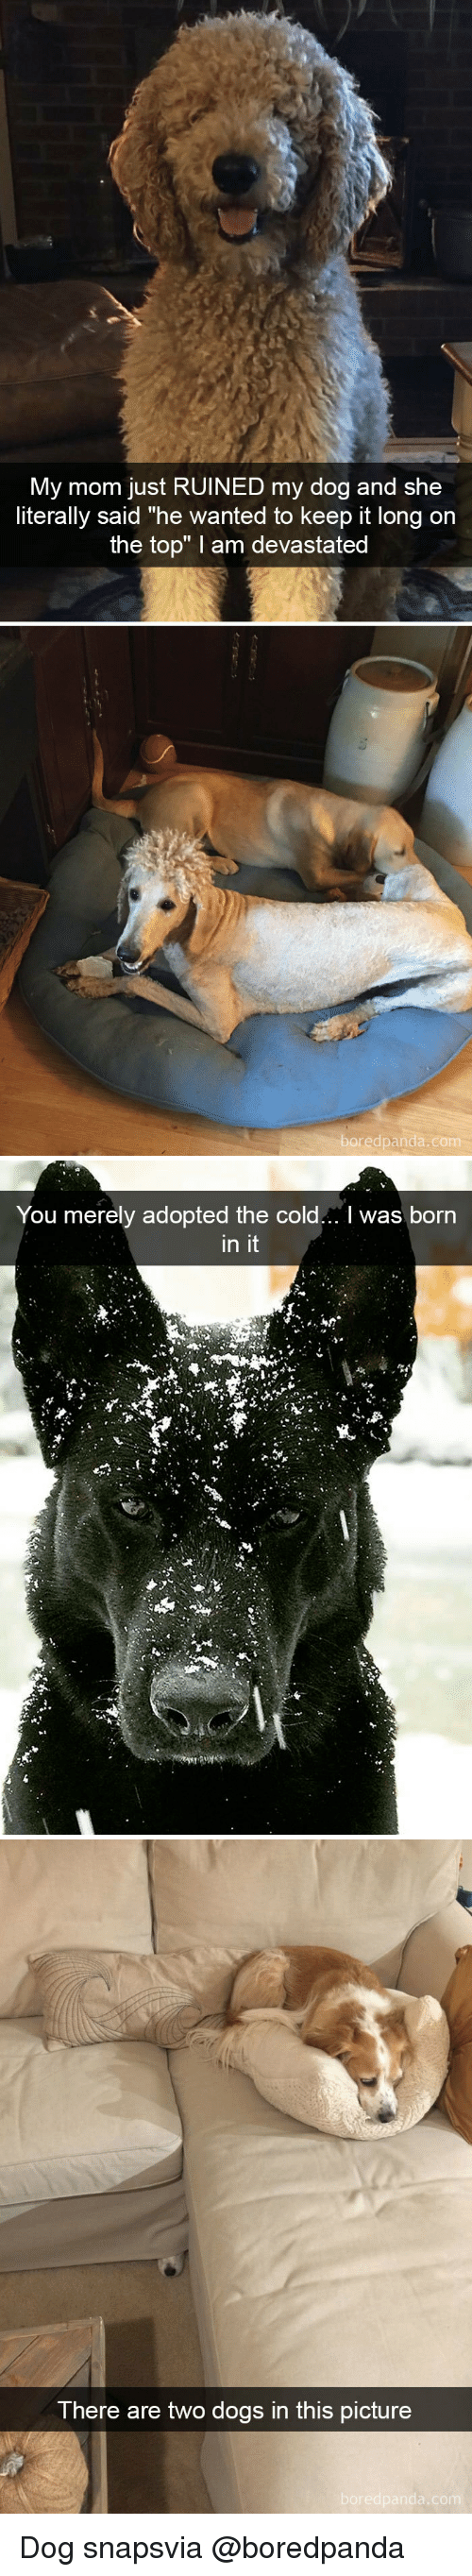 """Dogs, Cold, and Mom: My mom just RUINED my dog and she  literally said """"he wanted to keep it long on  the top"""" I am devastated  edpanda.co   You merely adopted the cold... I was born  in it   There are two dogs in this picture Dog snapsvia @boredpanda"""